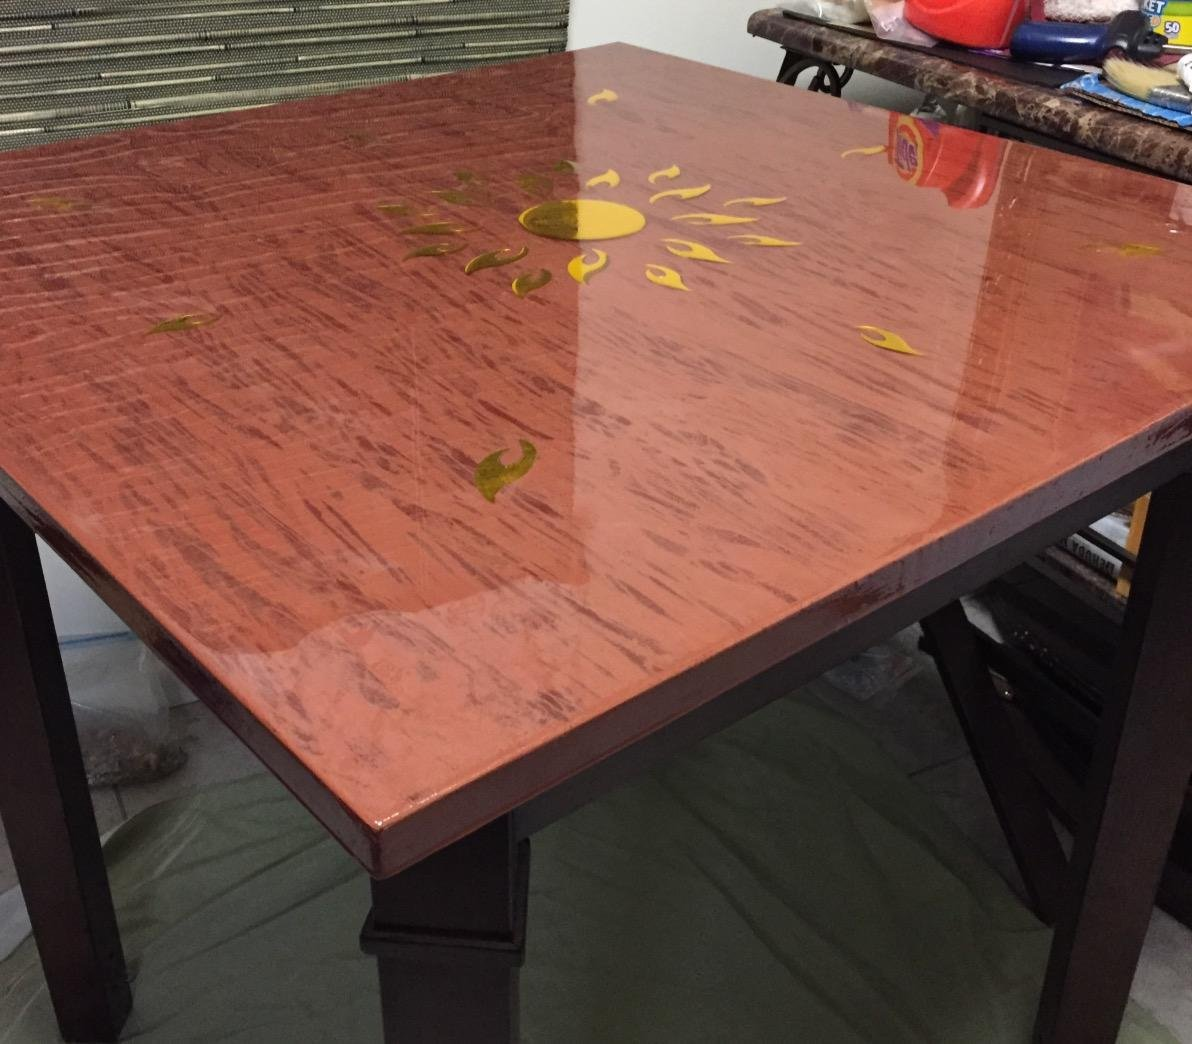 Crystal Clear Bar Table Top Epoxy Resin Coating For Wood Tabletop   3.8l  Kit: Amazon.com.au: Kitchen